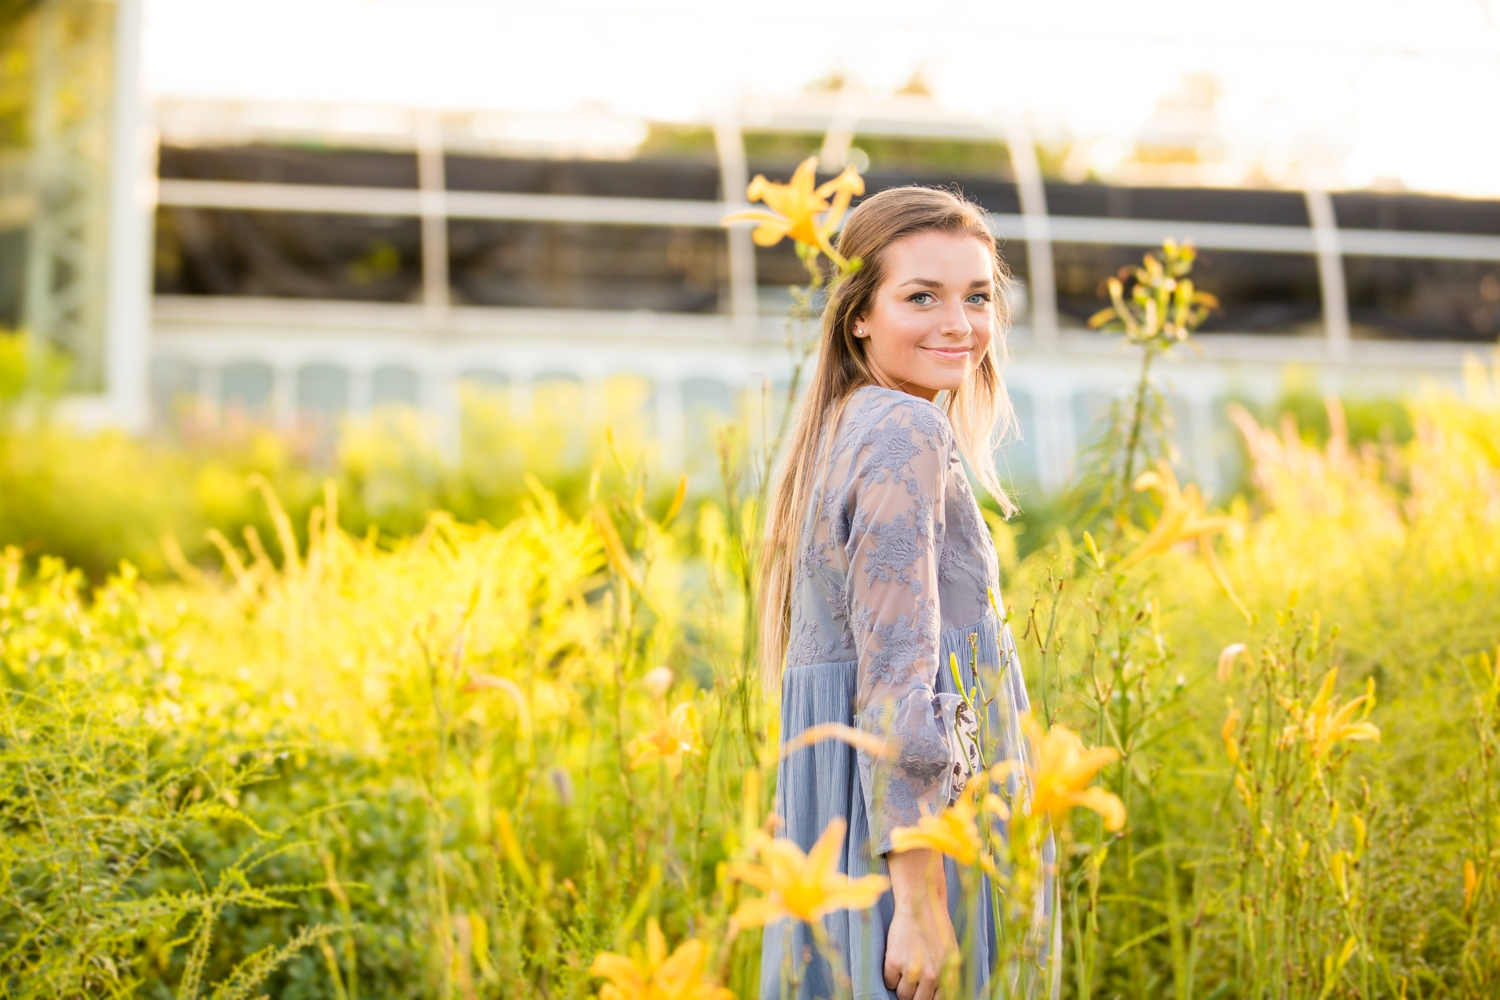 pittsburgh area location ideas for girl senior portraits jenna